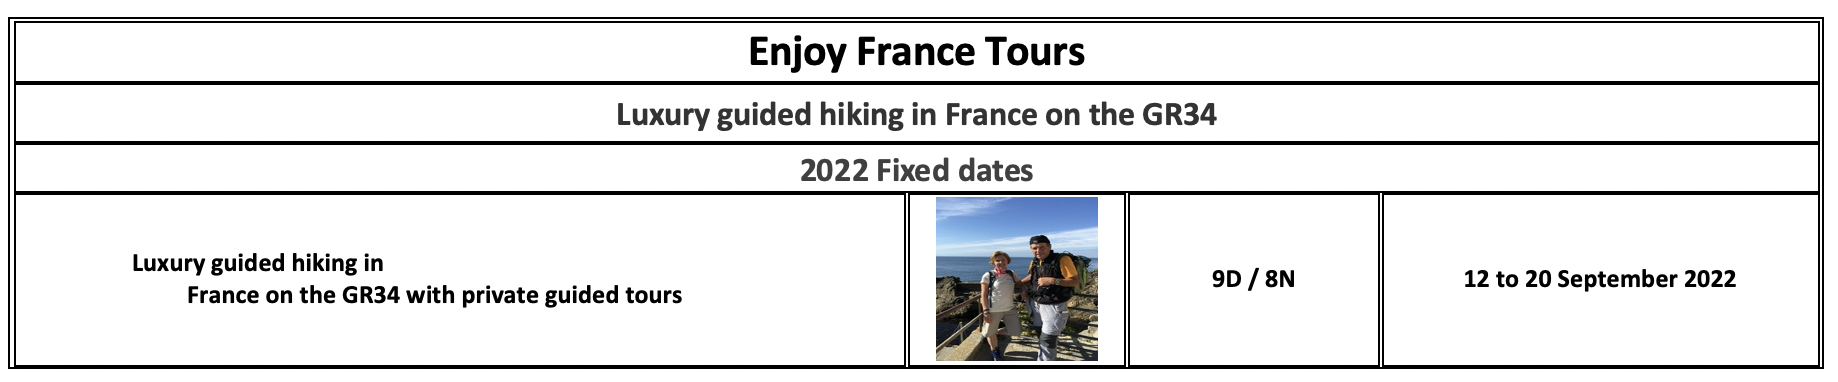 Enjoy France Tours 2022 Luxury Hiking